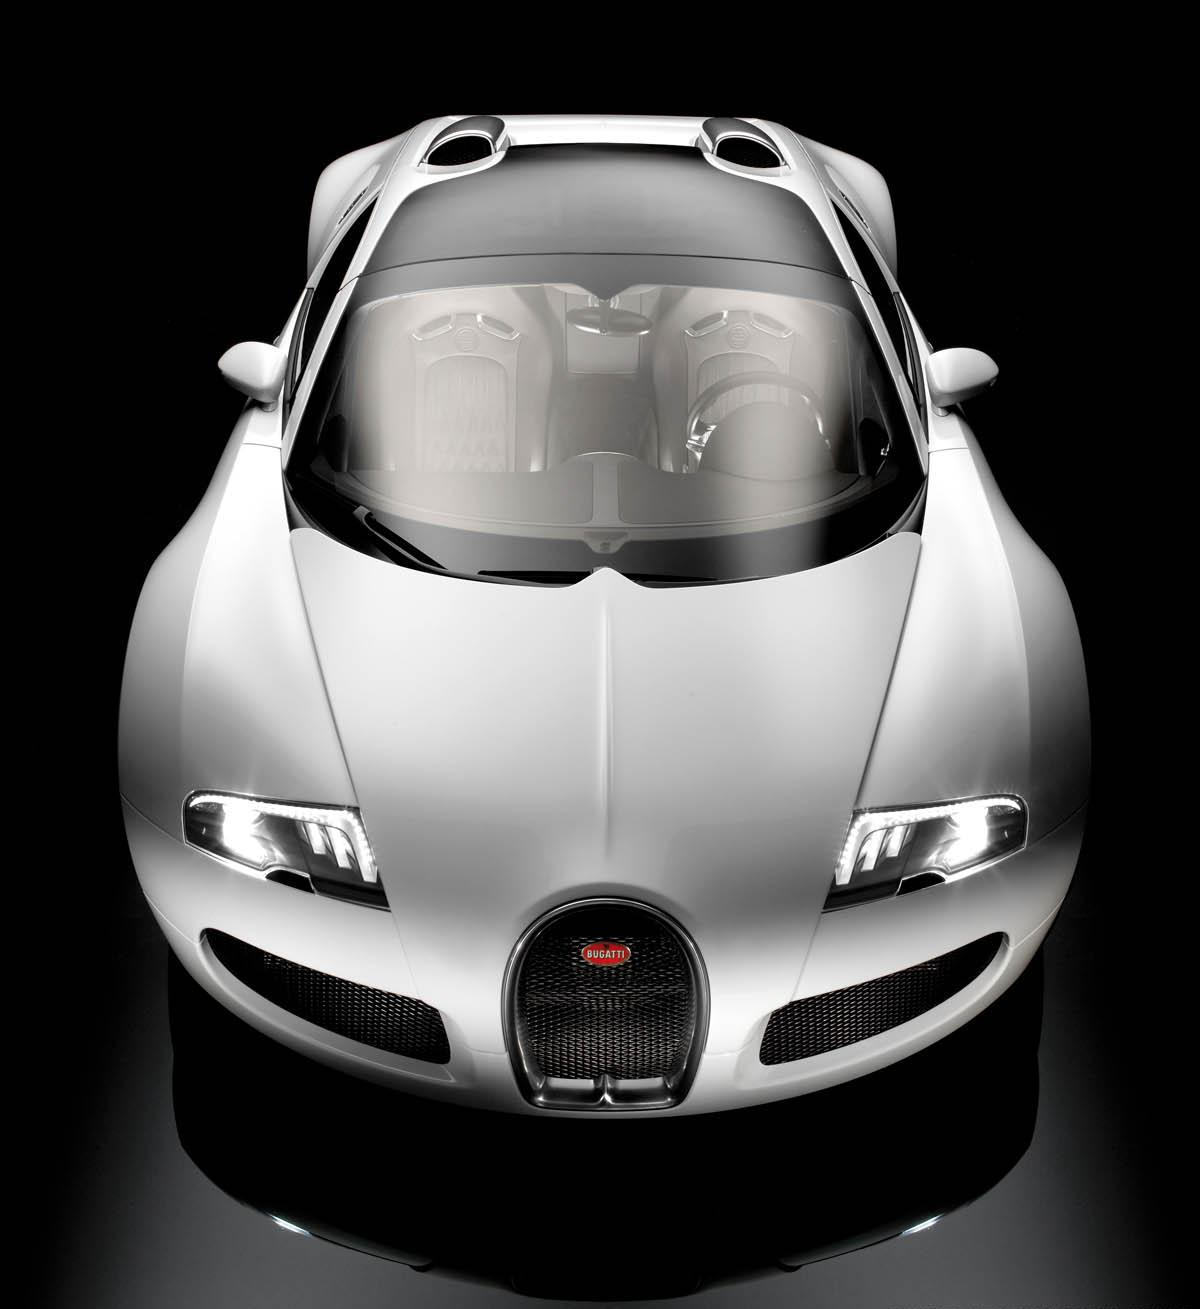 new luxury roadster bugatti veyron 16 4 grand sport first images it s you. Black Bedroom Furniture Sets. Home Design Ideas